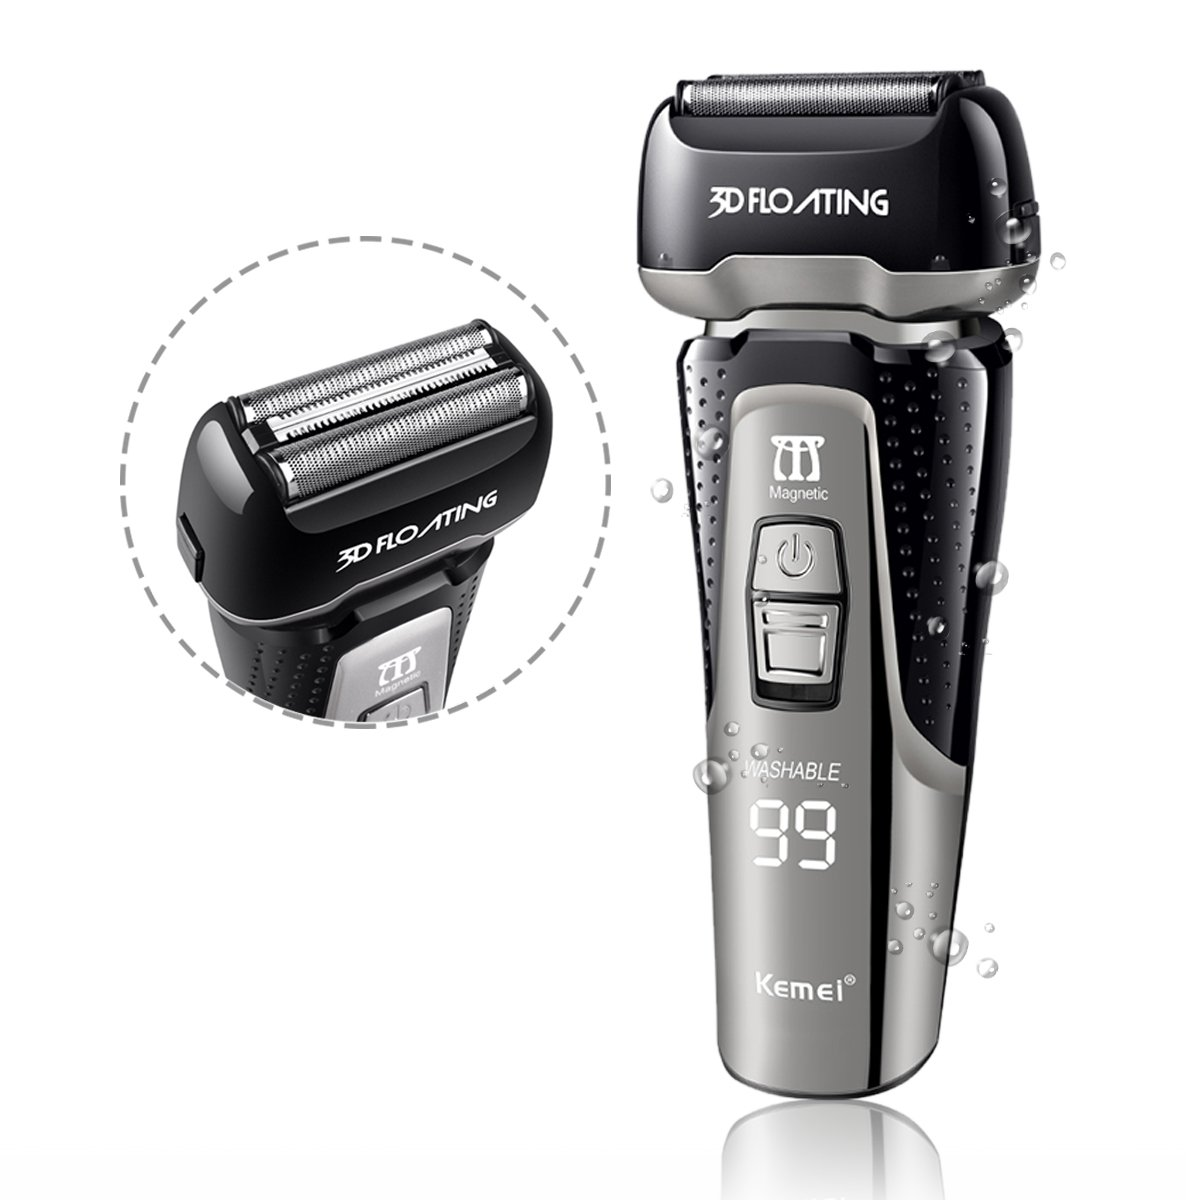 Foil Shaver T-Antrix Men's Waterproof Rechargeable LCD Display 3-Blade Lithium Battery Wet/Dry Cordless Mens Electric Razor Shavers Pop up Trimmer Travel Pouch Black AHGRD006391